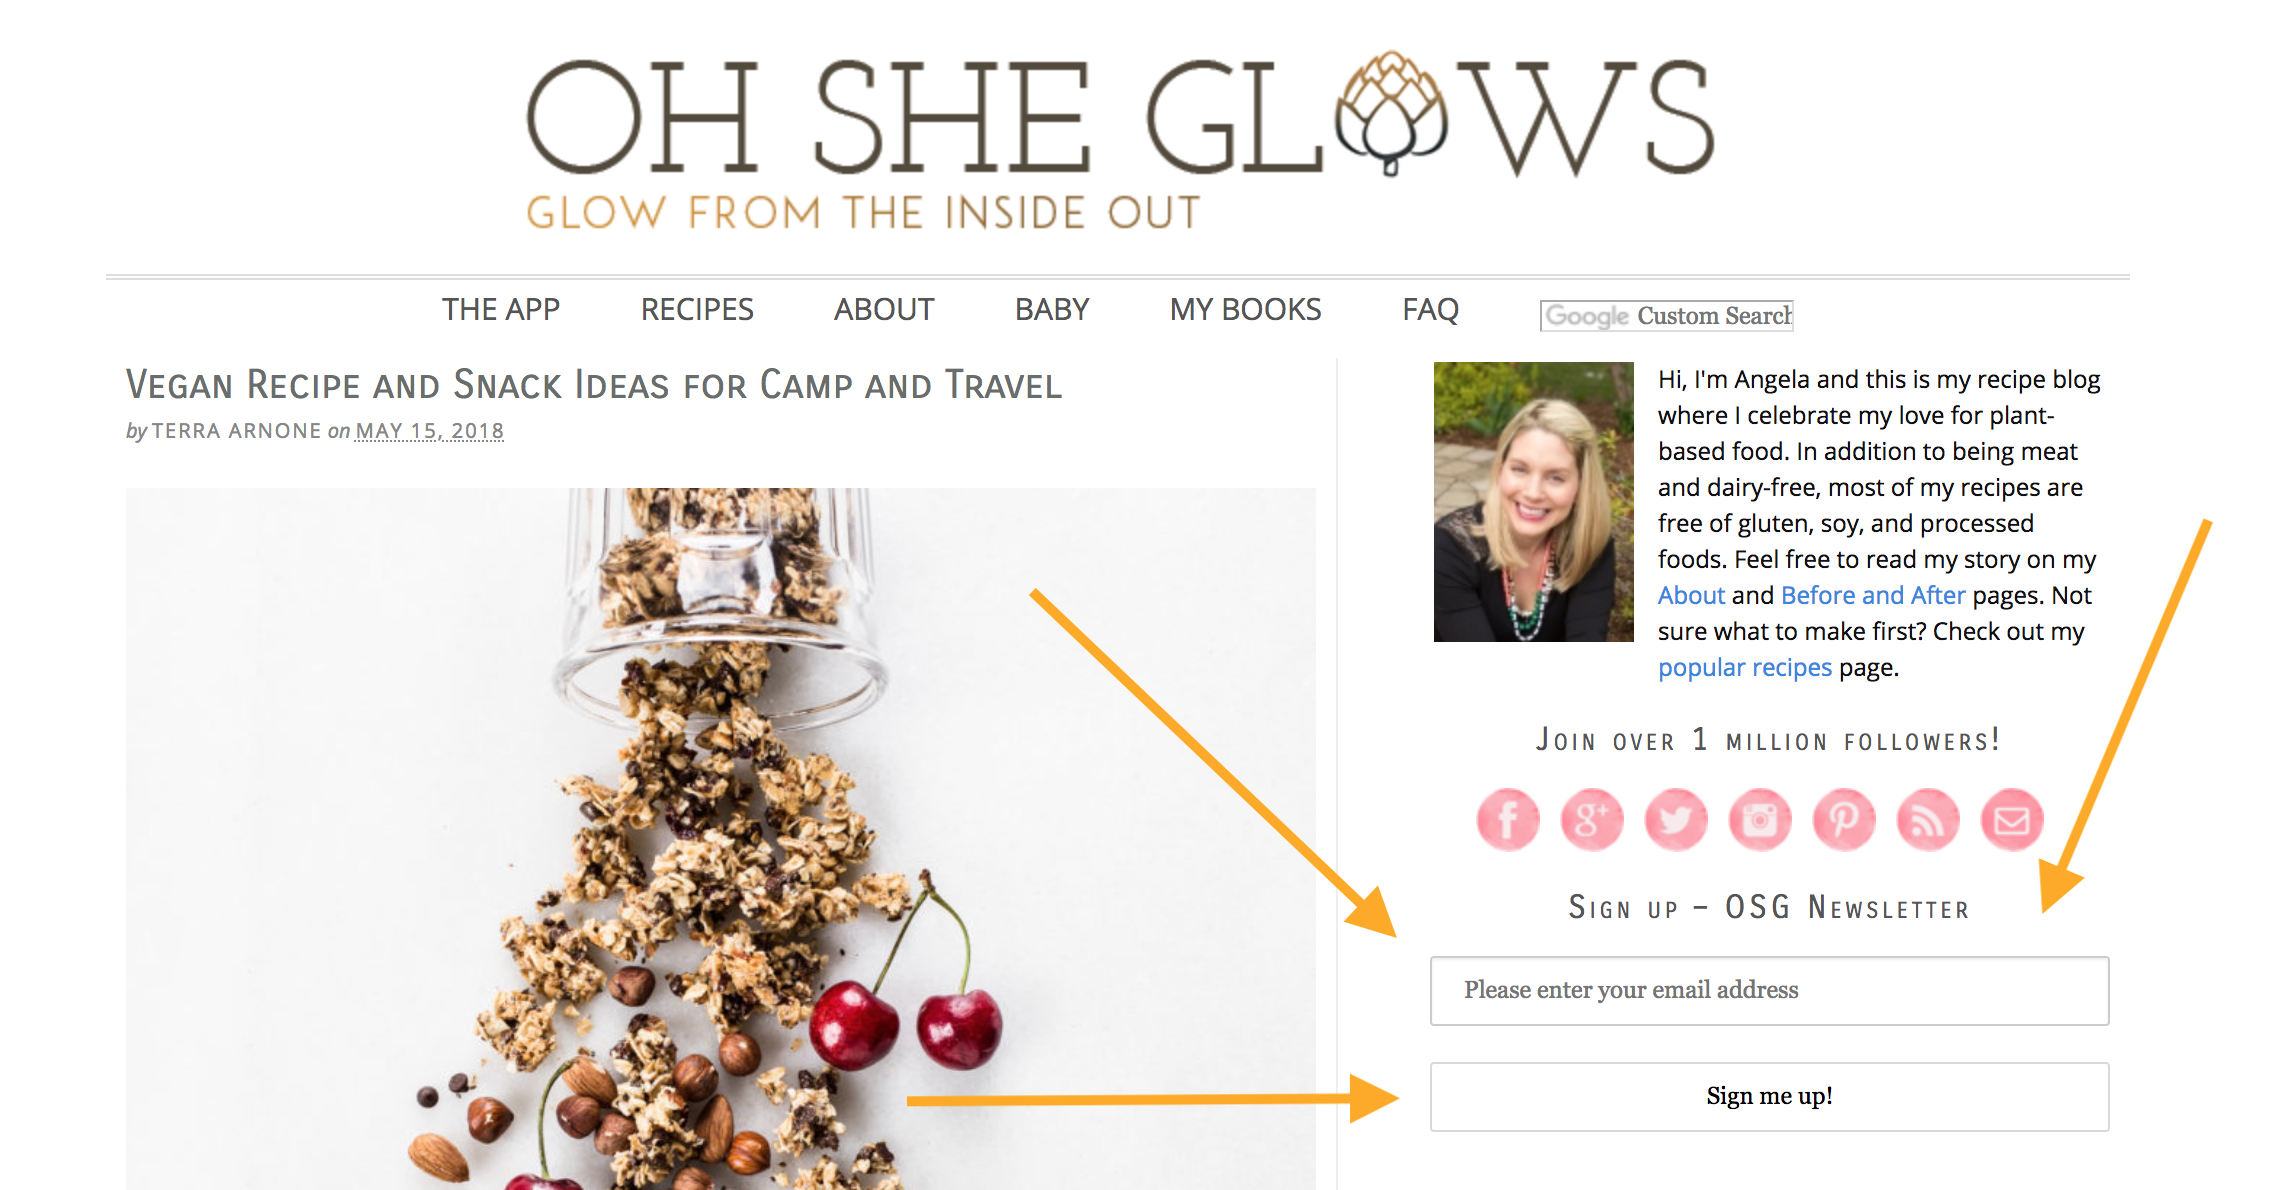 Oh She Glows includes a one-field, embedded mailing list signup form directly on their homepage.